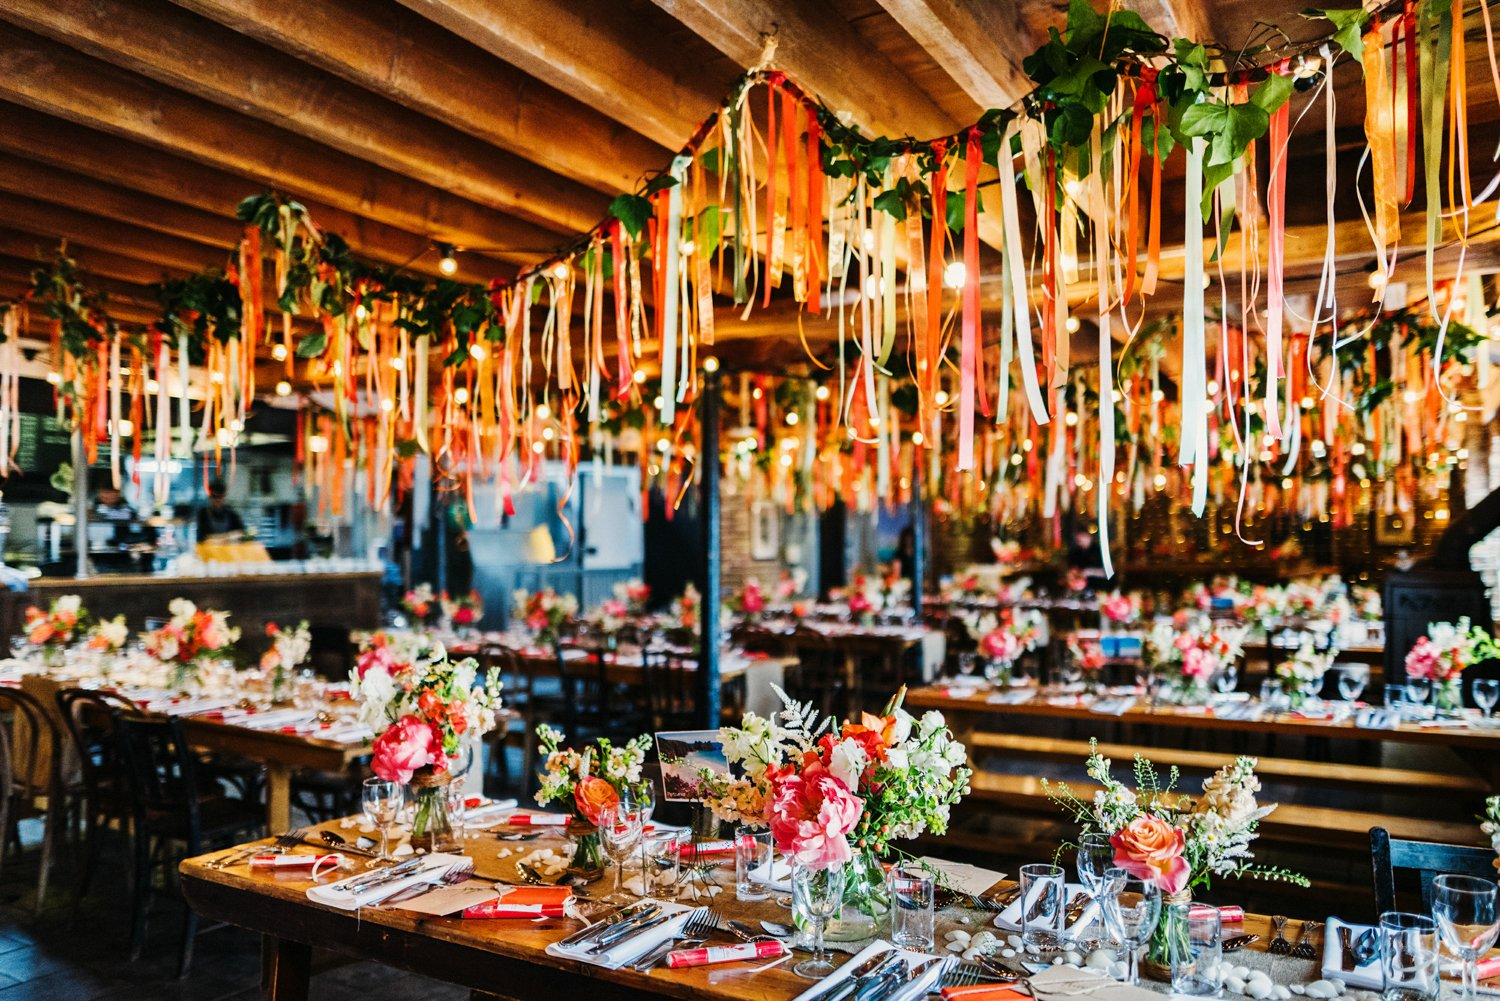 Colourful wedding decorations BABB Photo